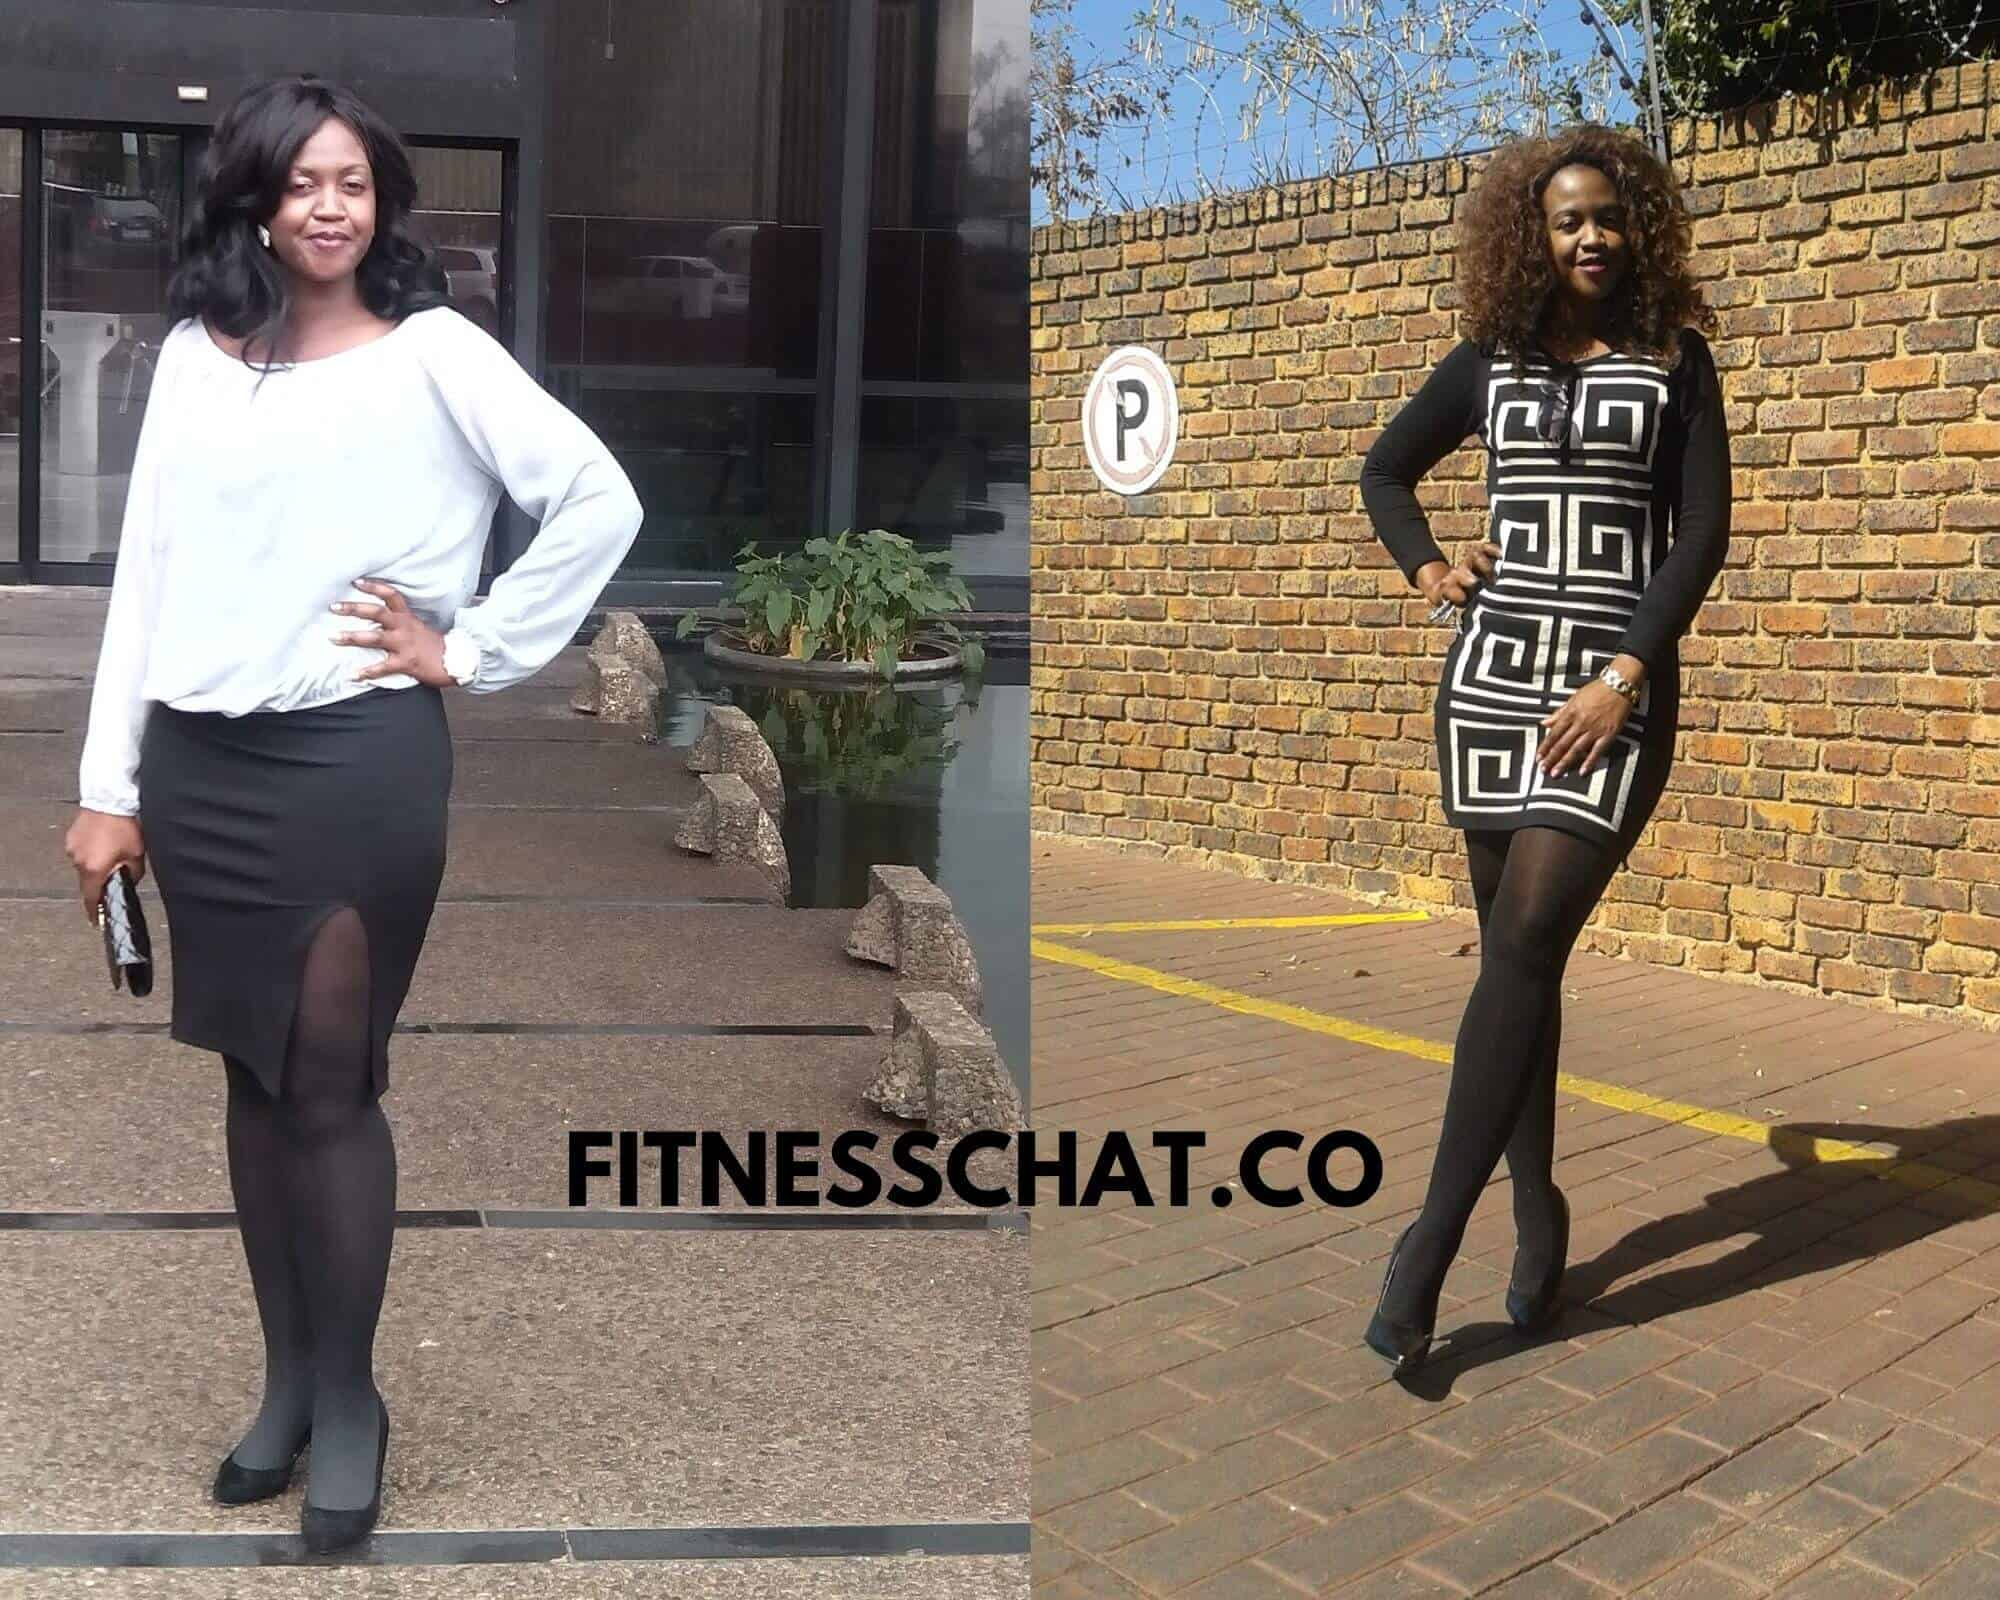 Contact Fitness Chat. Fitness chat founder and editor